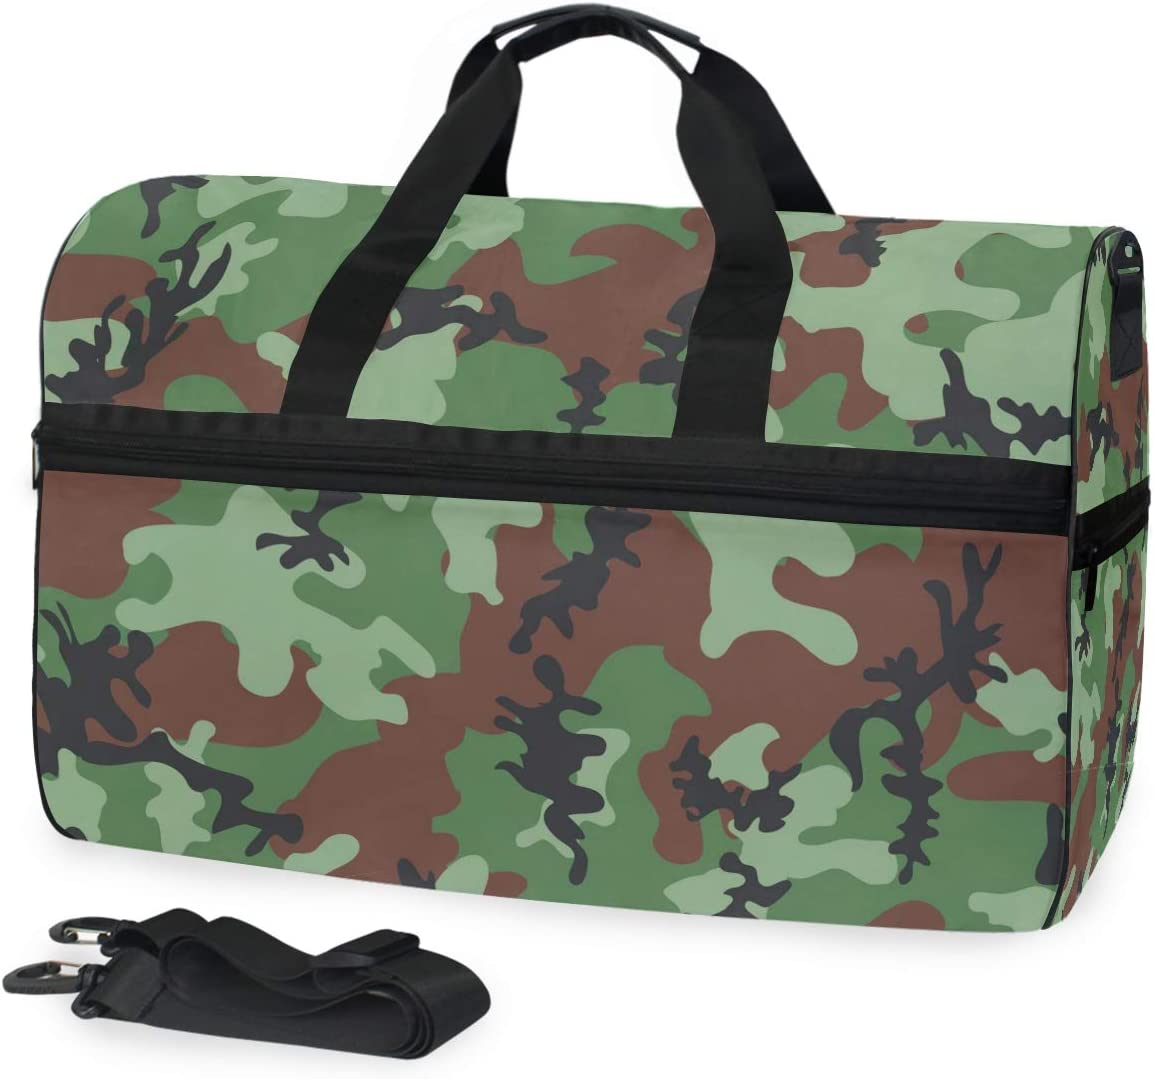 Camouflage Sports Gym Bag with Shoes Compartment Travel Duffel Bag for Men and Women